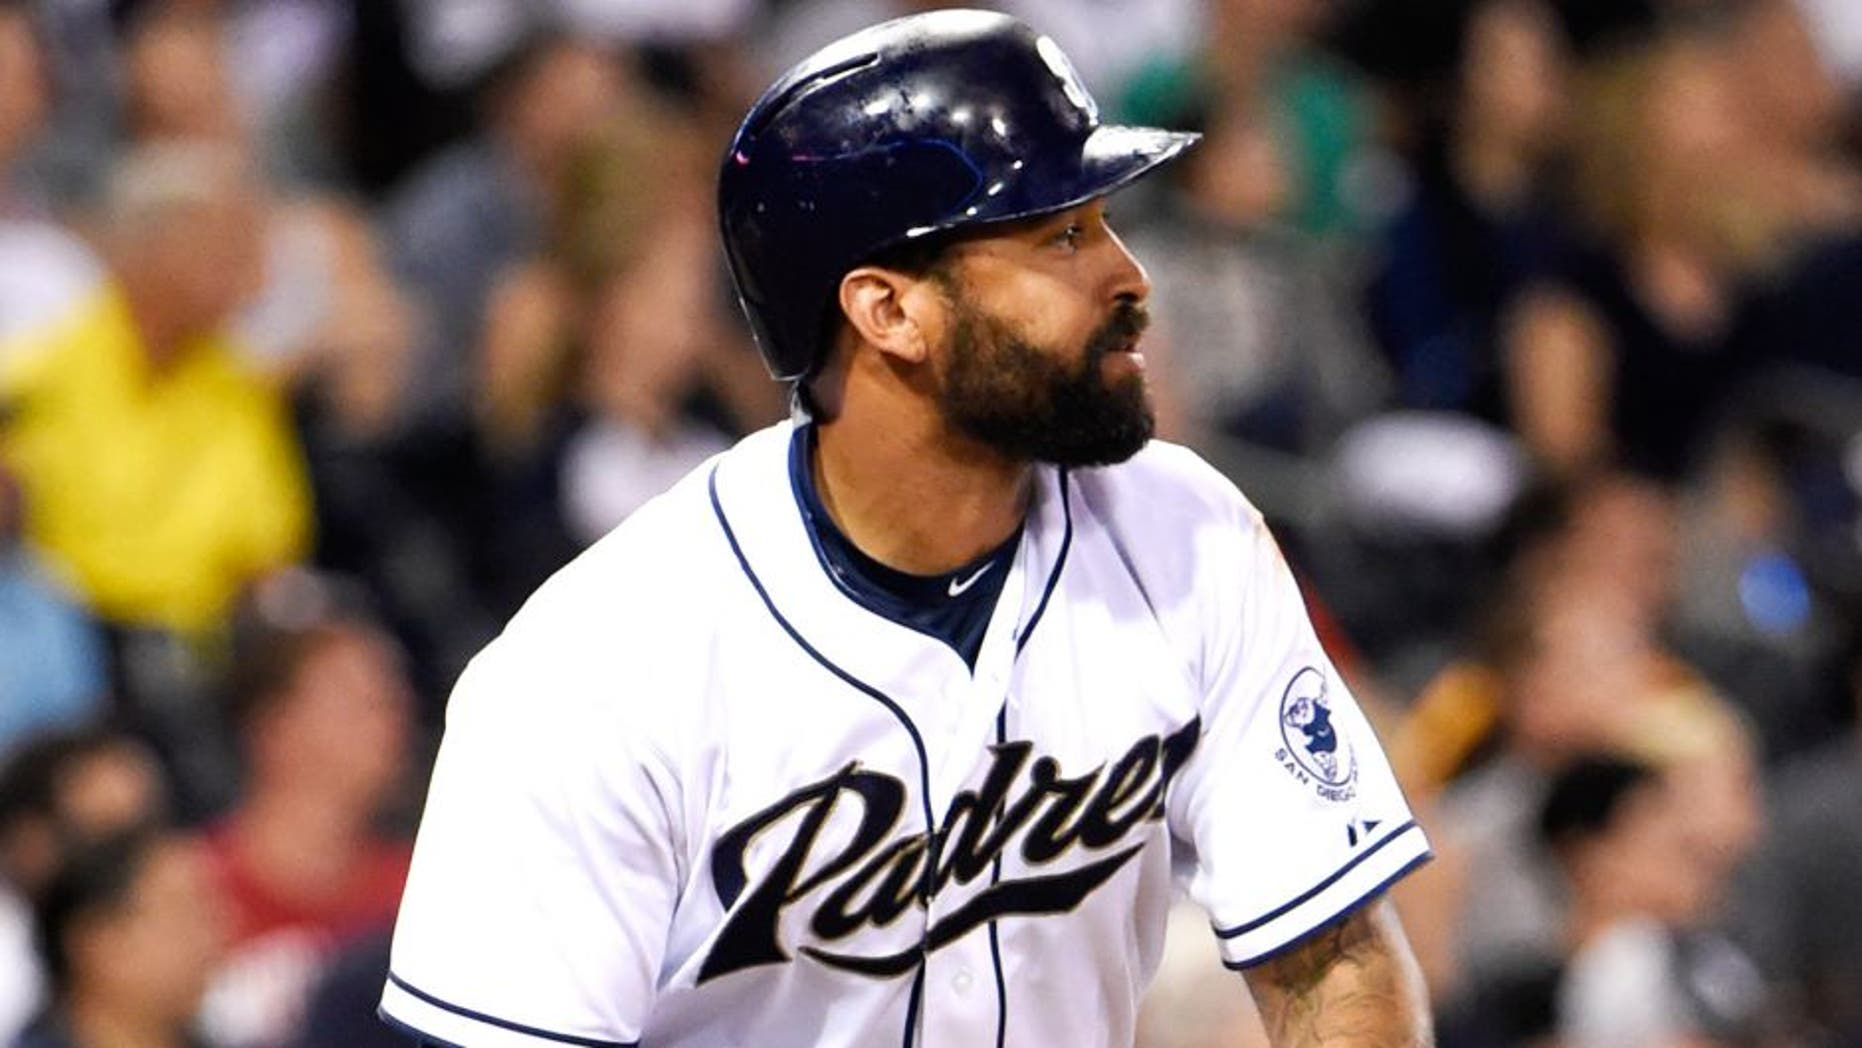 SAN DIEGO, CA - JULY 23: Matt Kemp #27 of the San Diego Padres tosses his bat after hitting a long fly ball during the fourth inning of a baseball game against the Miami Marlins at Petco Park July 23, 2015 in San Diego, California. (Photo by Denis Poroy/Getty Images)